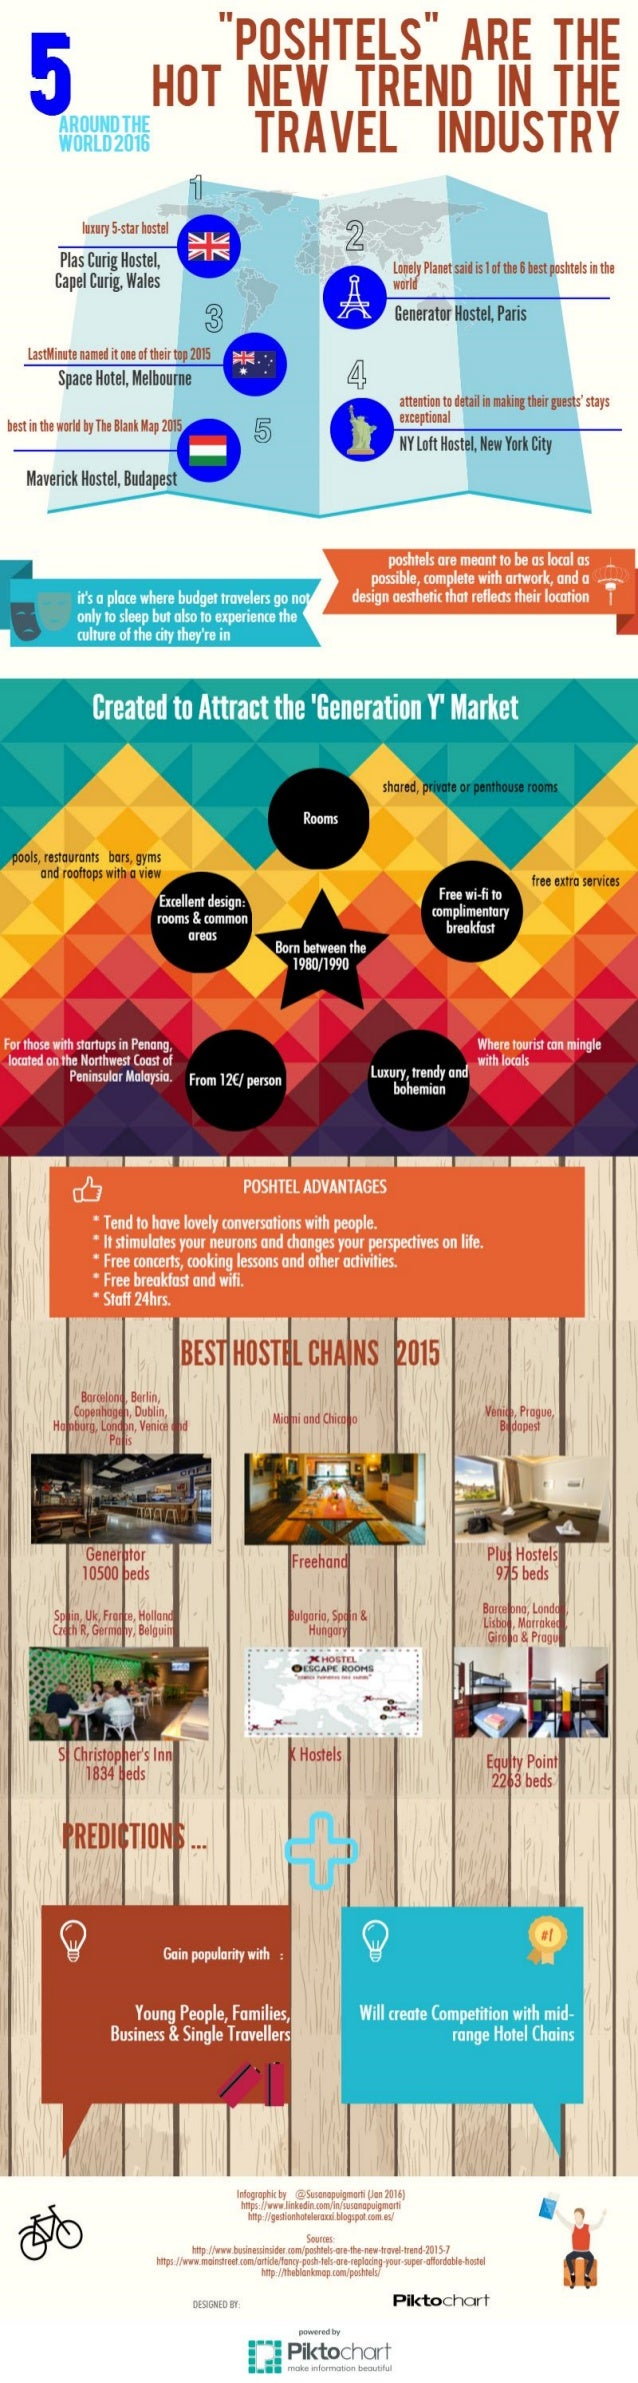 Poshtels   luxury hostels - tourism trends 2016 - infographic